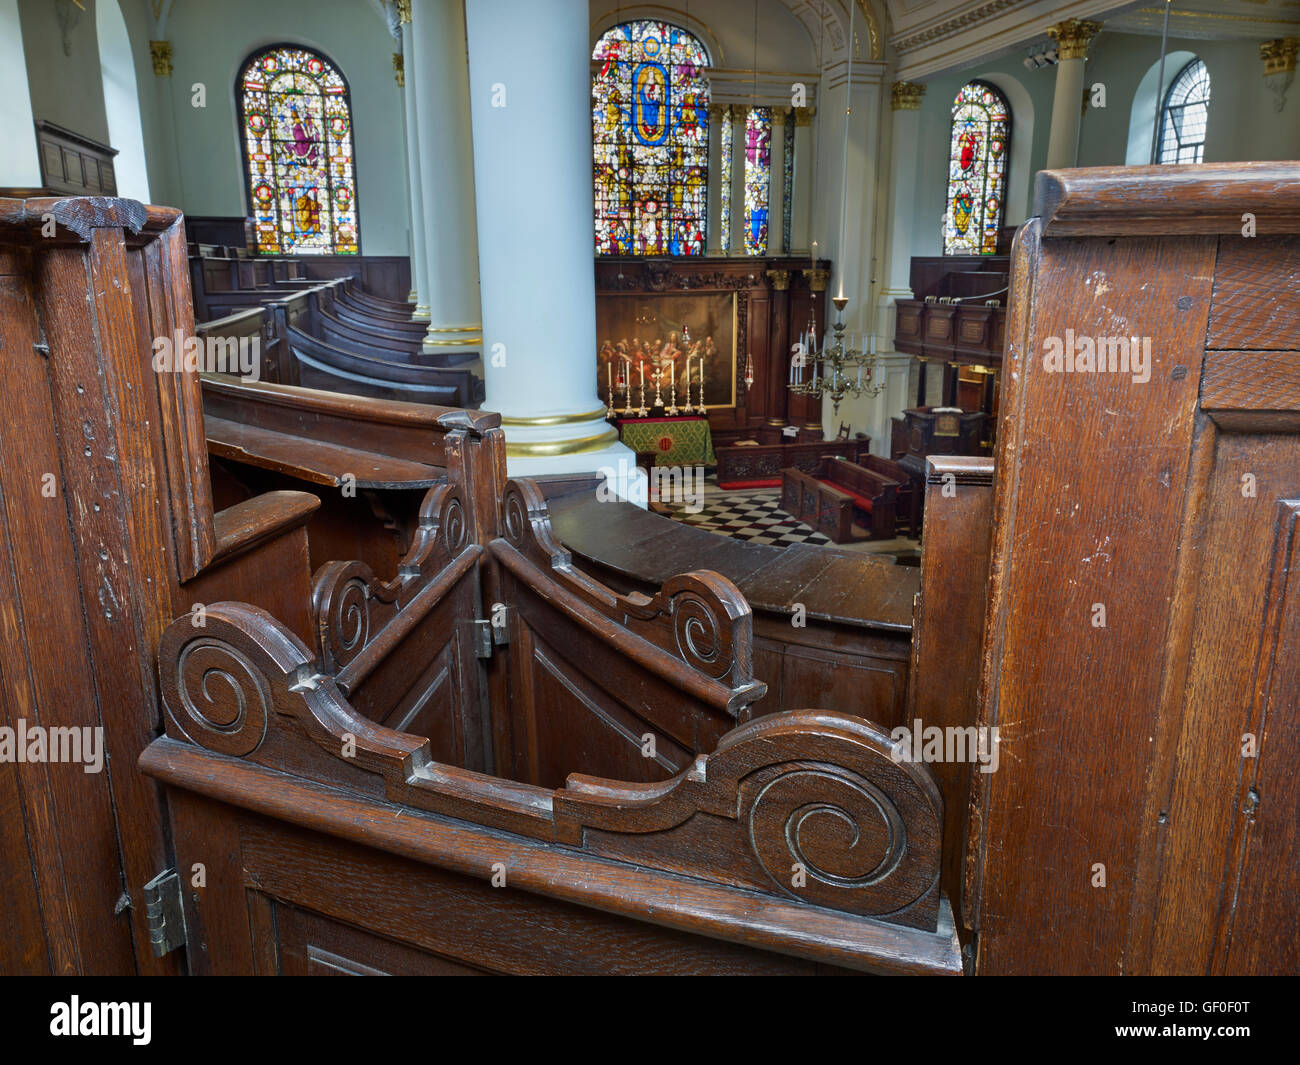 St George's Hanover Square. Pews with scroll-top doors in the gallery Stock Photo